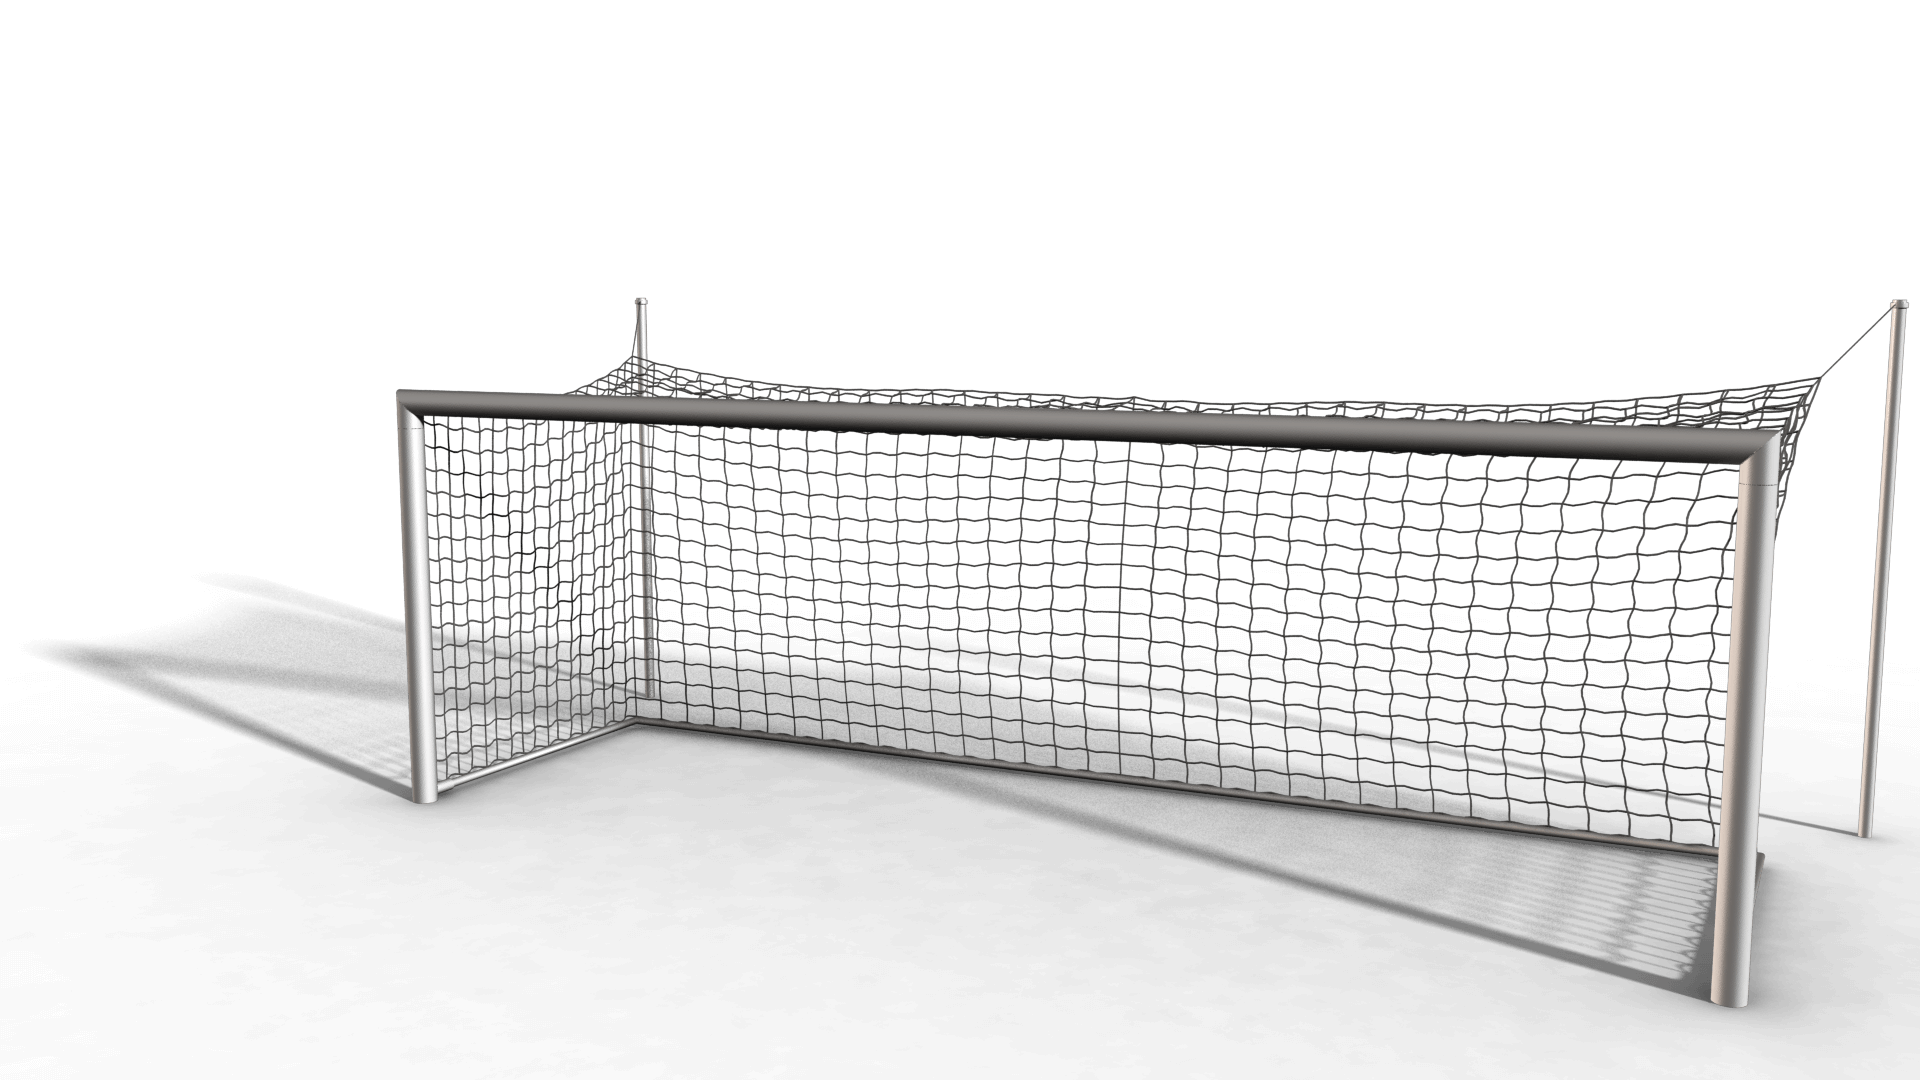 Goal drawing soccer net. Png transparent images pluspng